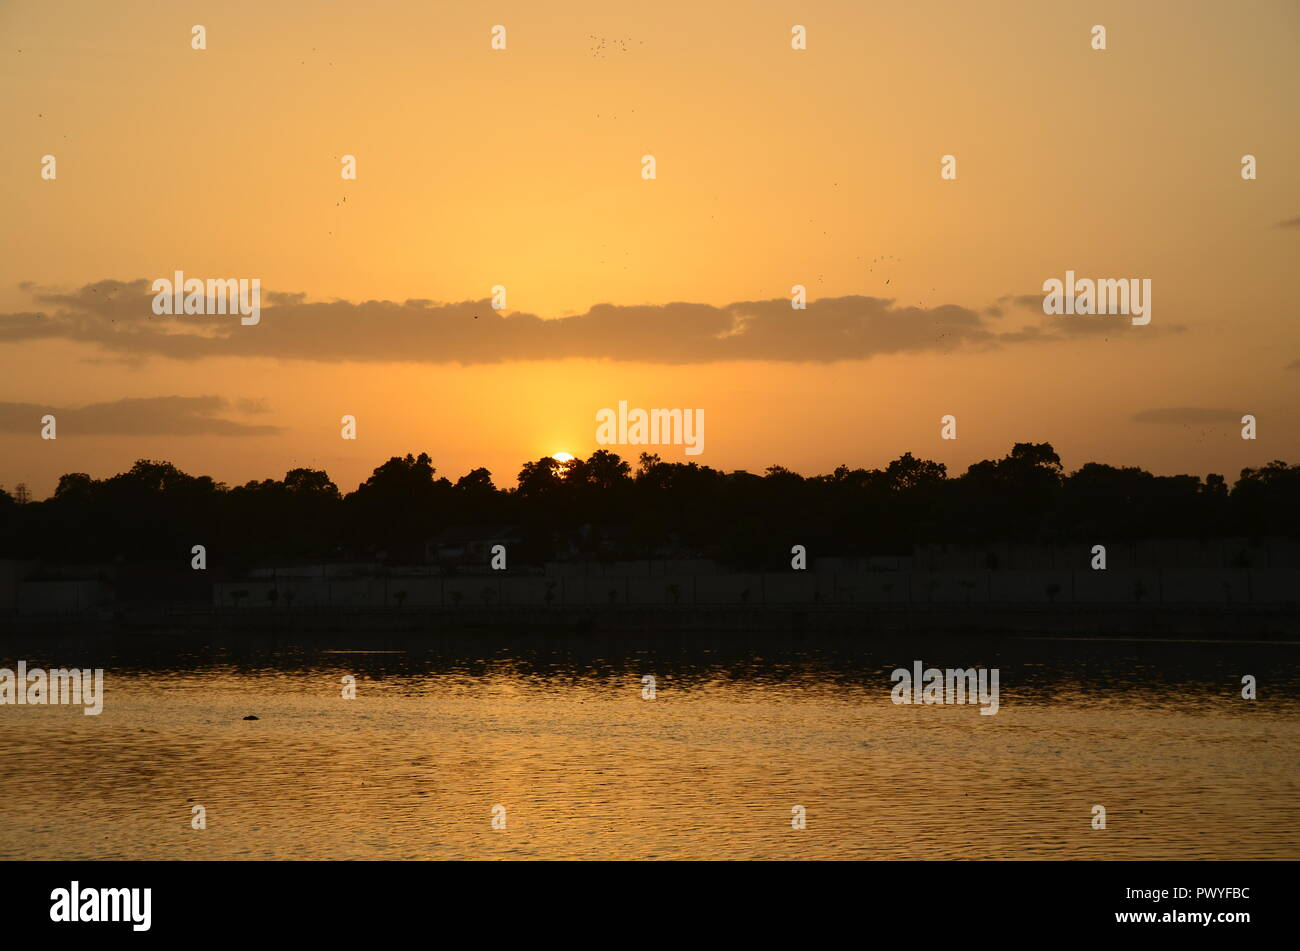 Sunset over the Sabarmati River Front in Ahmedabad in Gujrat, India. - Stock Image